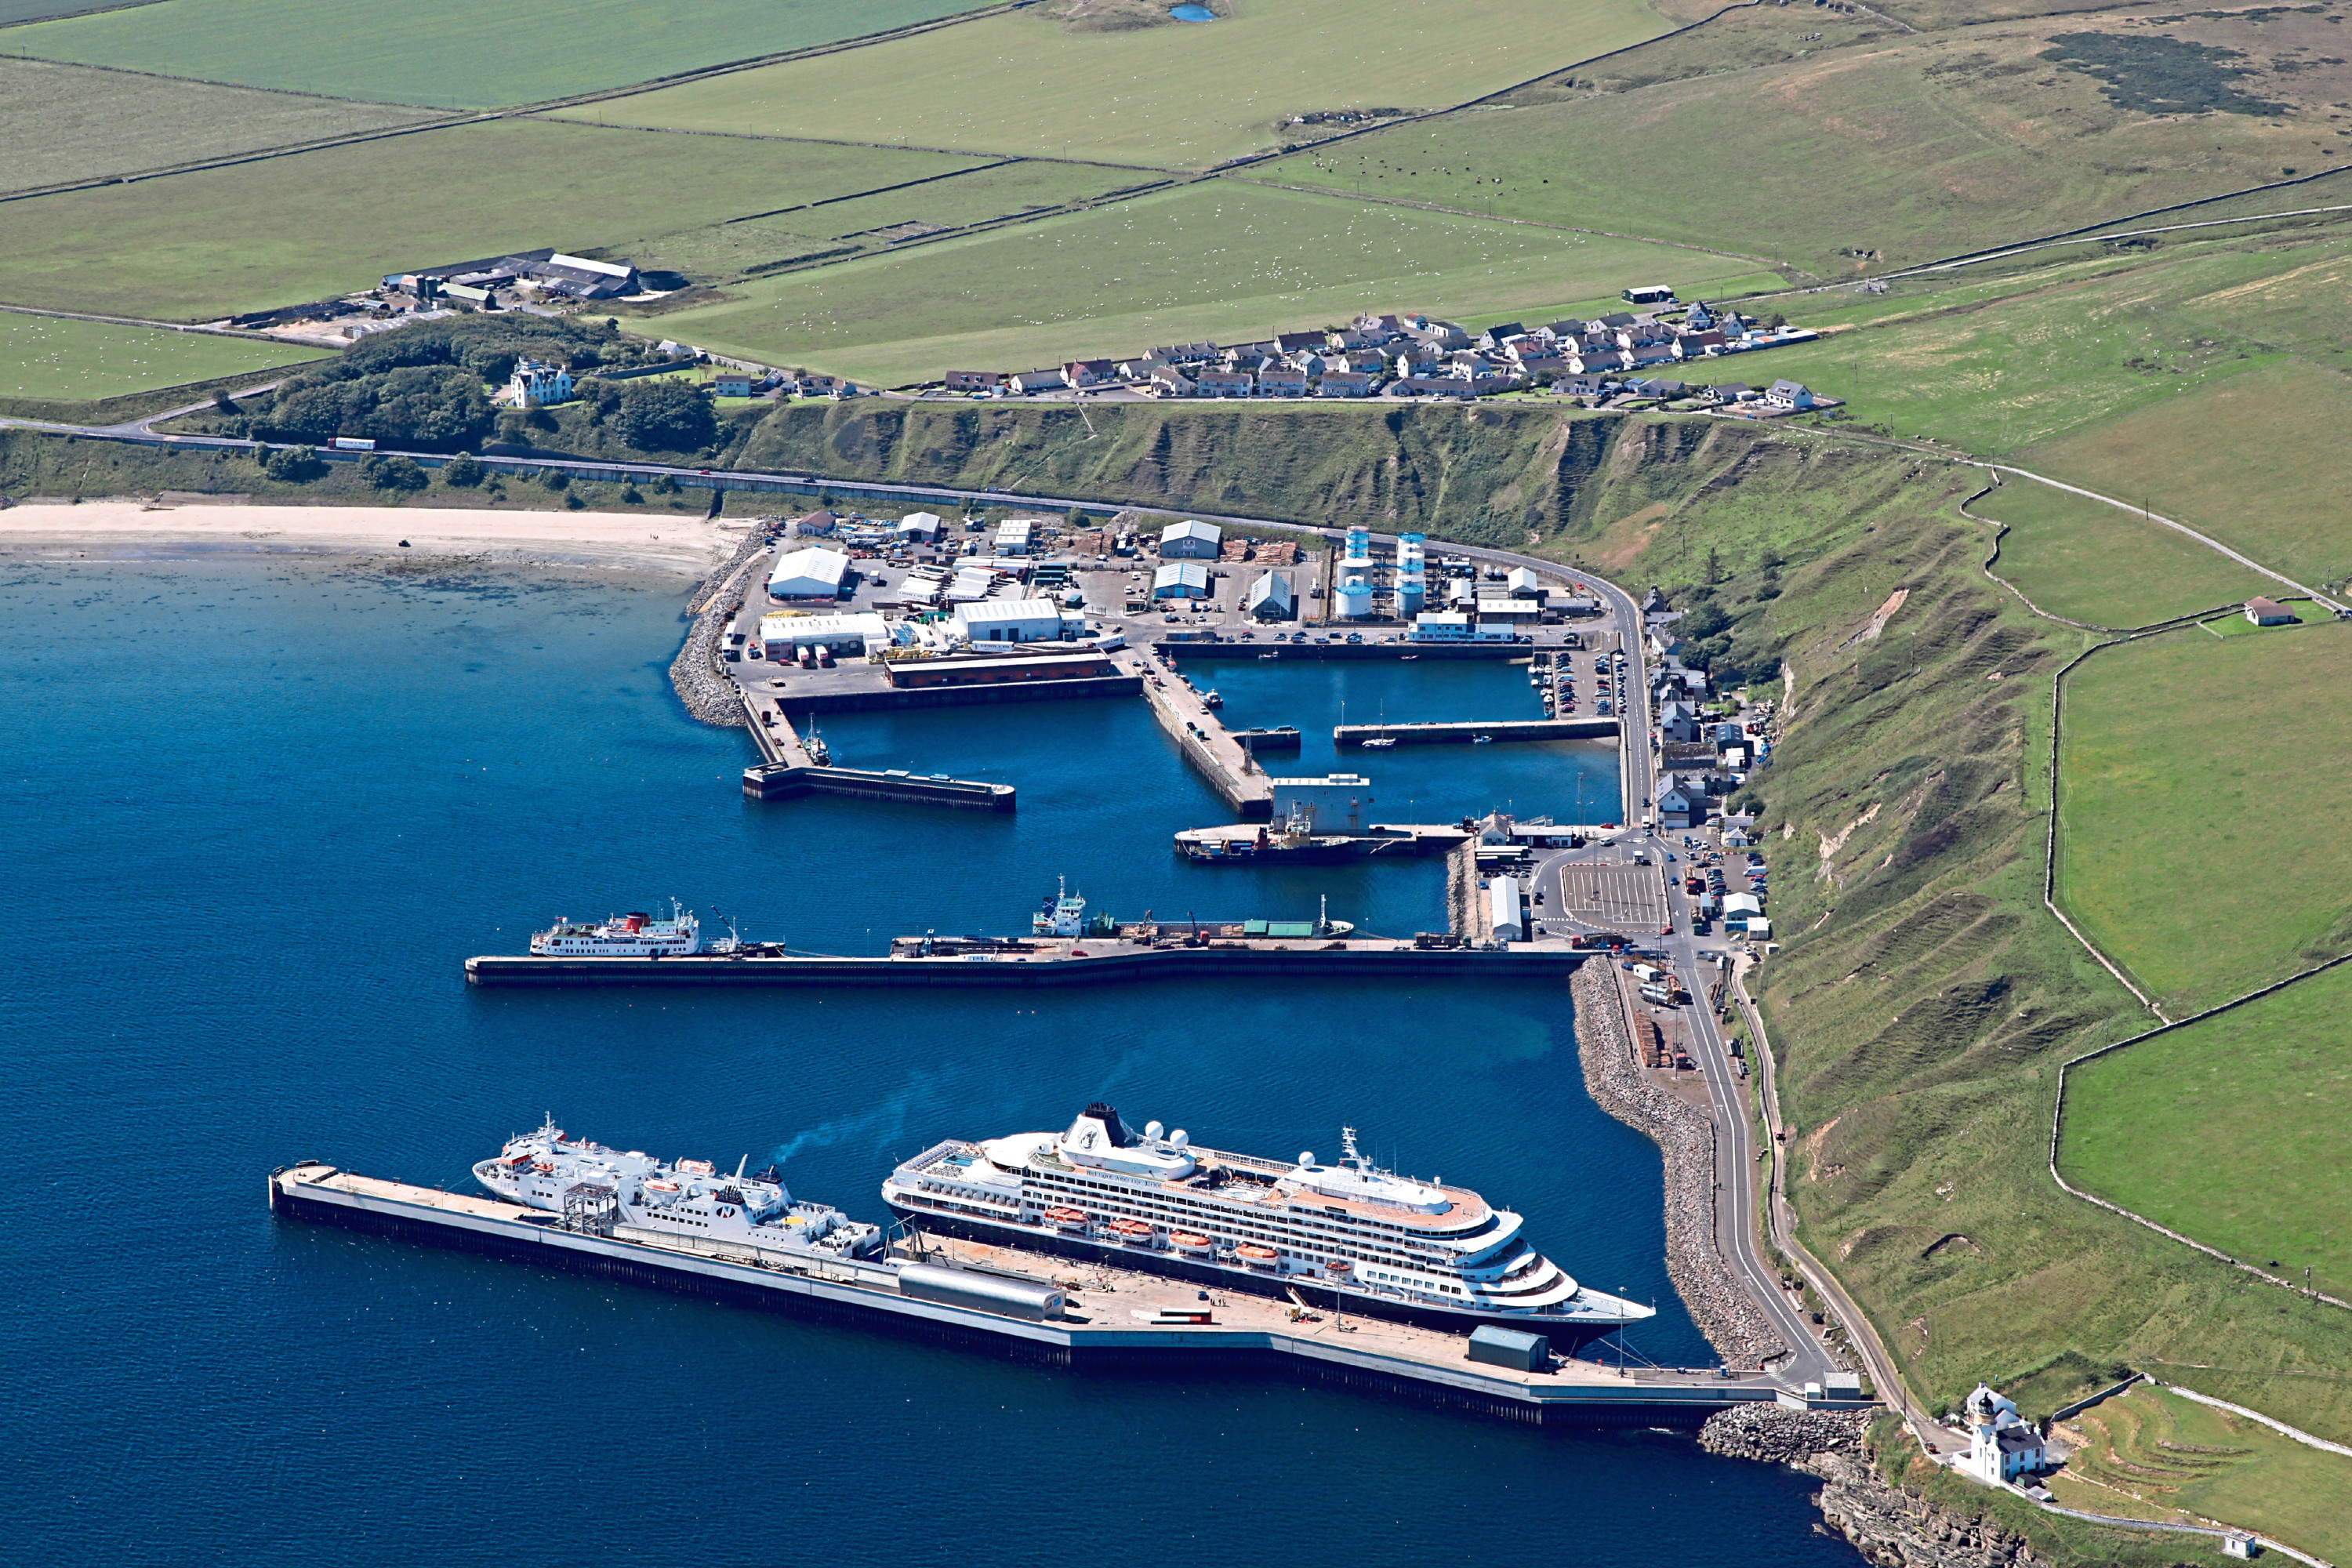 Cruise ship at Scrabster Harbour.    Scotland's most northerly mainland commercial port, Scrabster Harbour, has said bon voyage to its last scheduled cruise ship of the 2015 season.    The harbour, which is a multi-purpose port based in Caithness, welcomed six cruise ships throughout the summer bringing in passenger numbers of more than 3,200 to the area. Amadea, a 29,008 tonne cruise ship arrived in the harbour on September 8th from Reykjavik, Iceland with 576 visitors eager to visit the north of Scotland before leaving for Bremerhaven, Germany the next day.